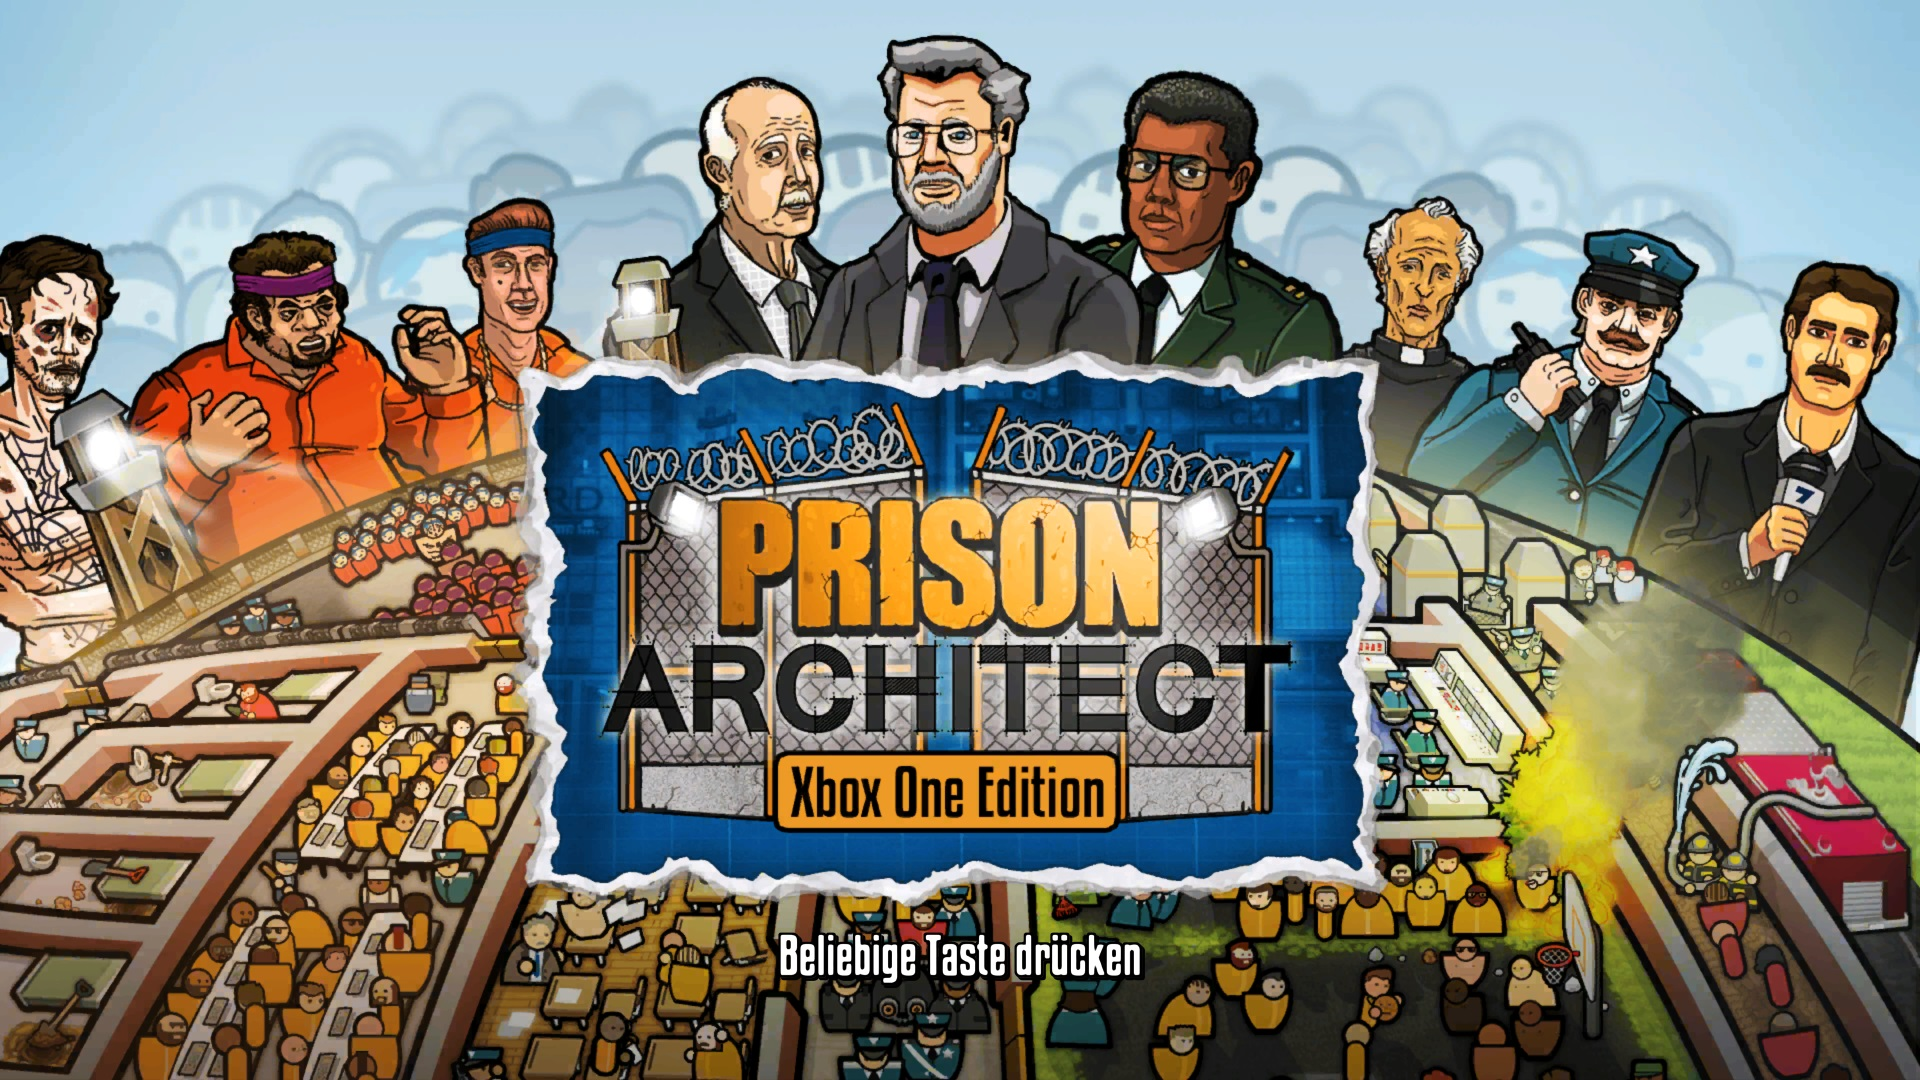 prison architect xobx one (1)